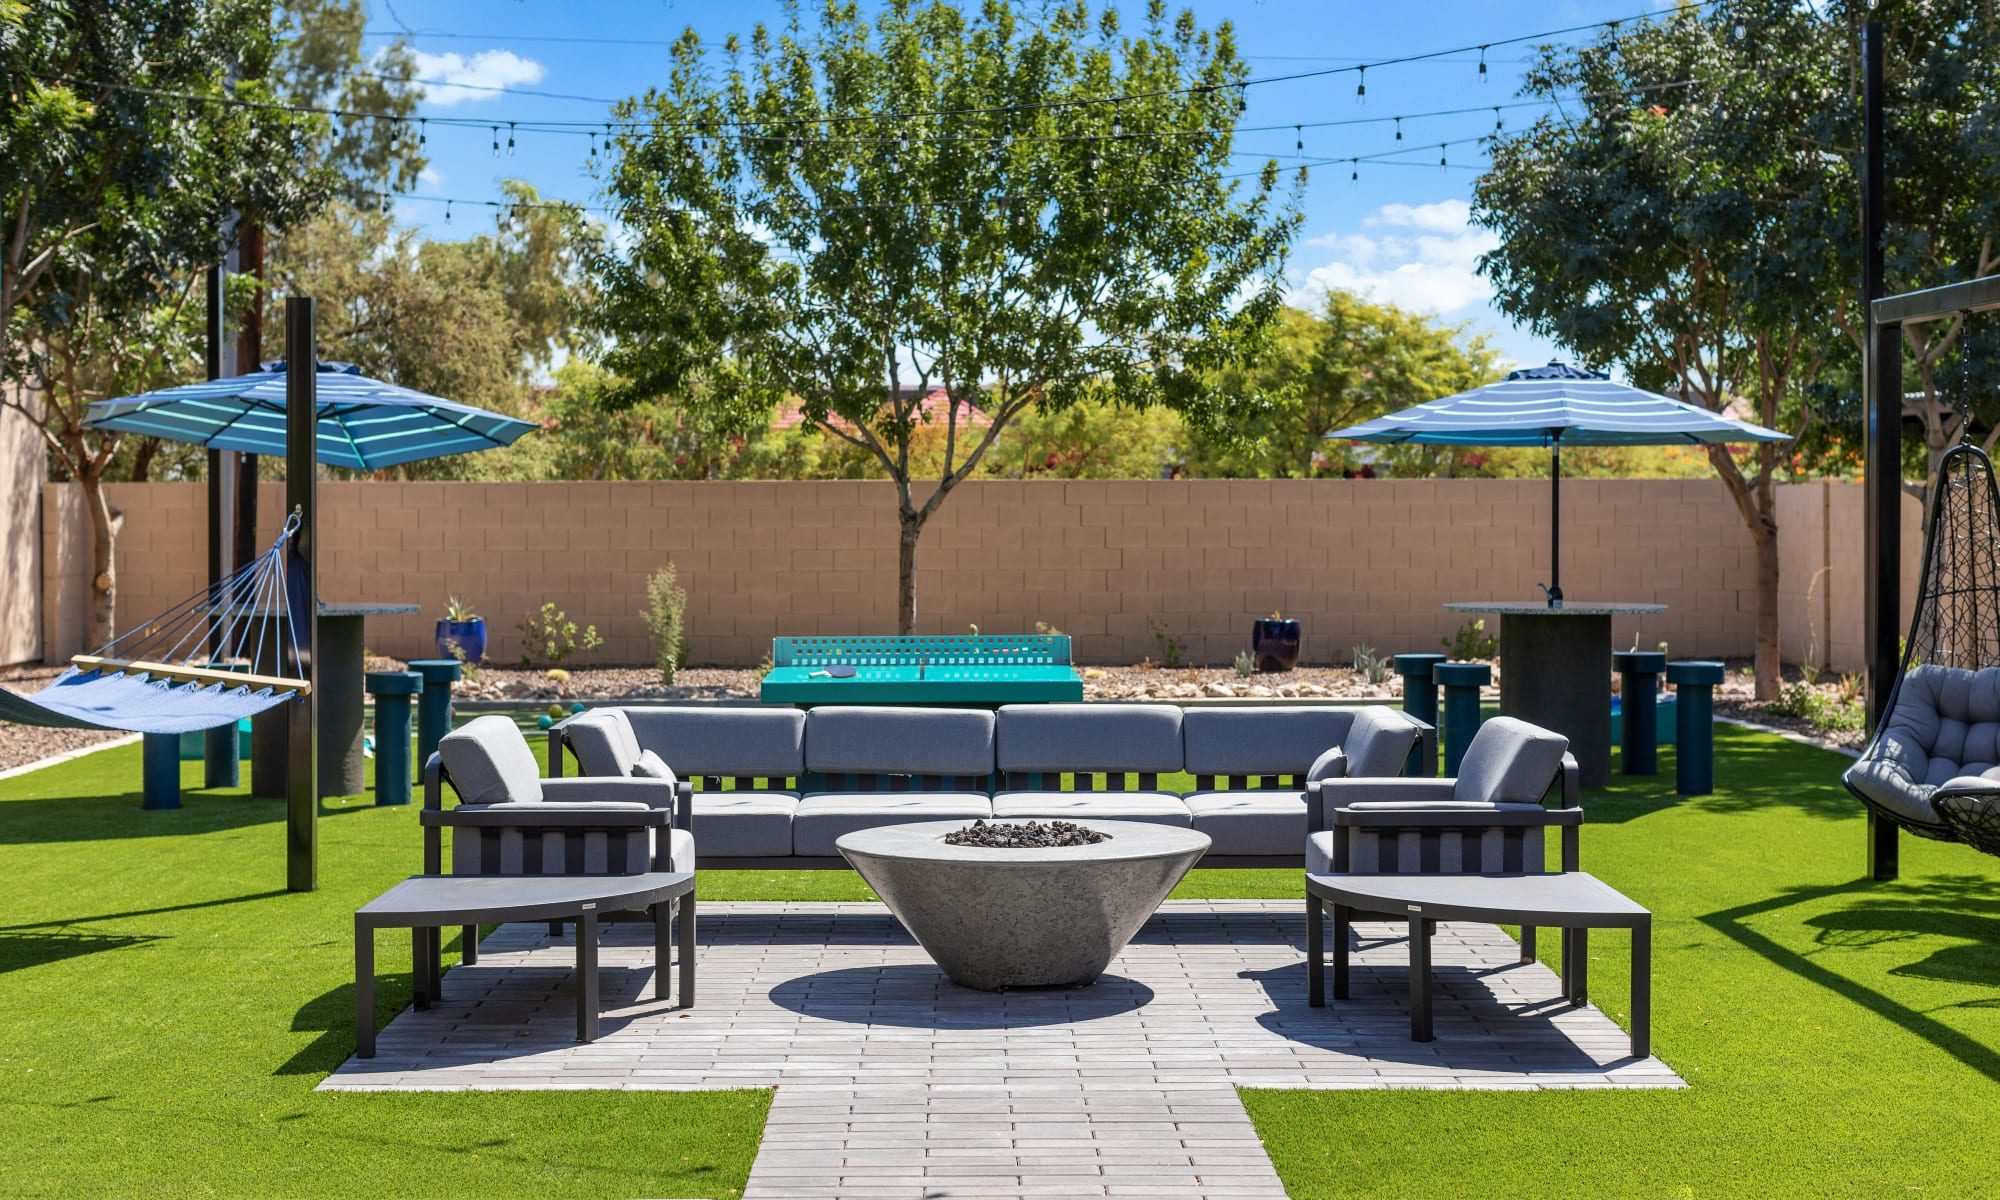 1408 Casitas at Palm Valley apartment homes in Avondale, Arizona